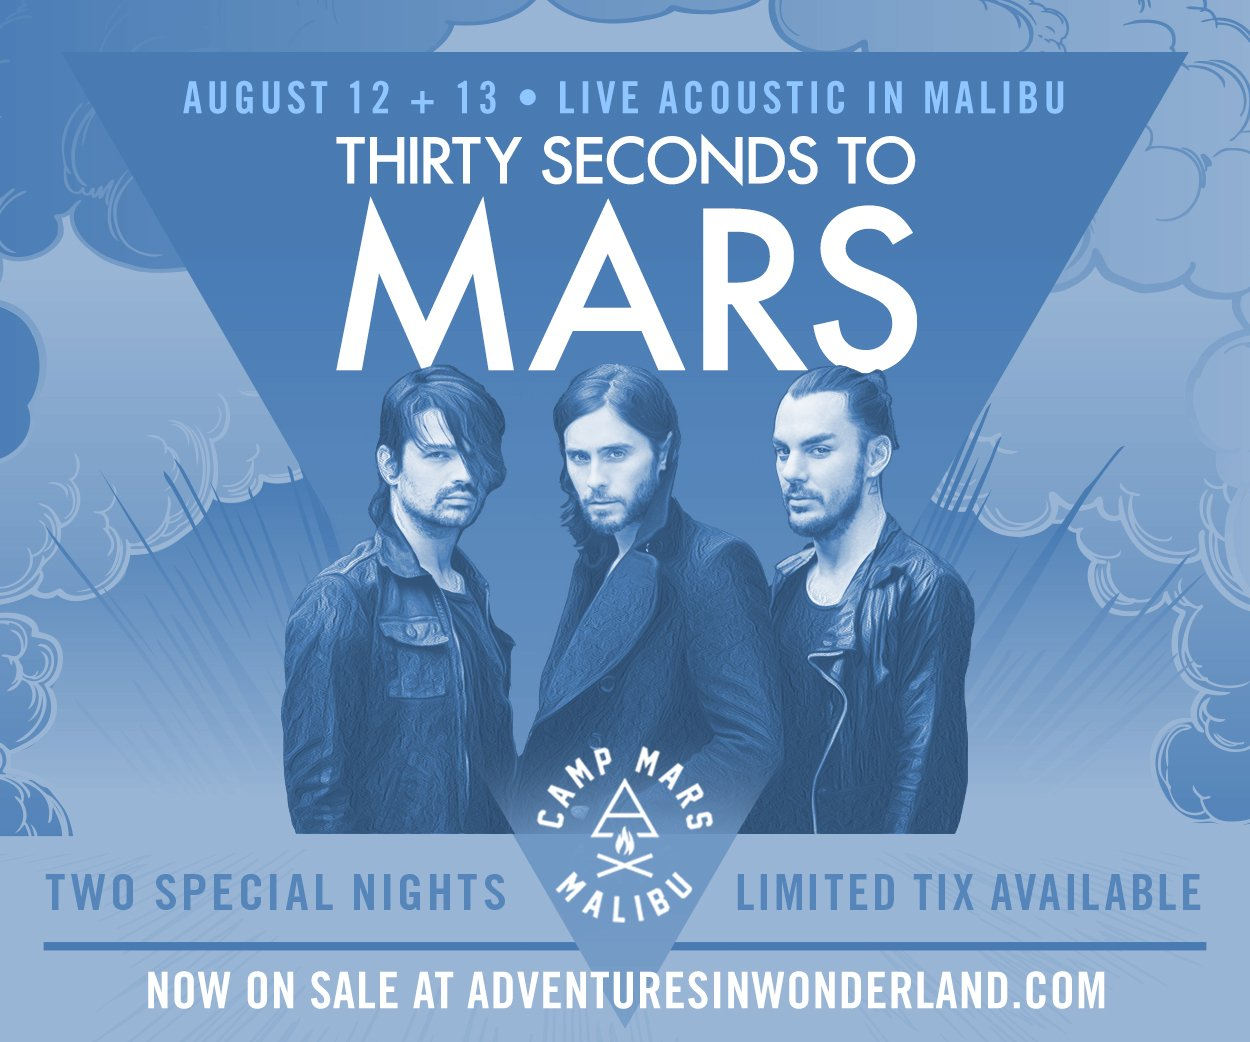 YOU'RE INVITED! MARS in Malibu • August 12 + 13 tix NOW ON SALE. https://t.co/LNUSQNFNzM https://t.co/FM5pCcZkdR